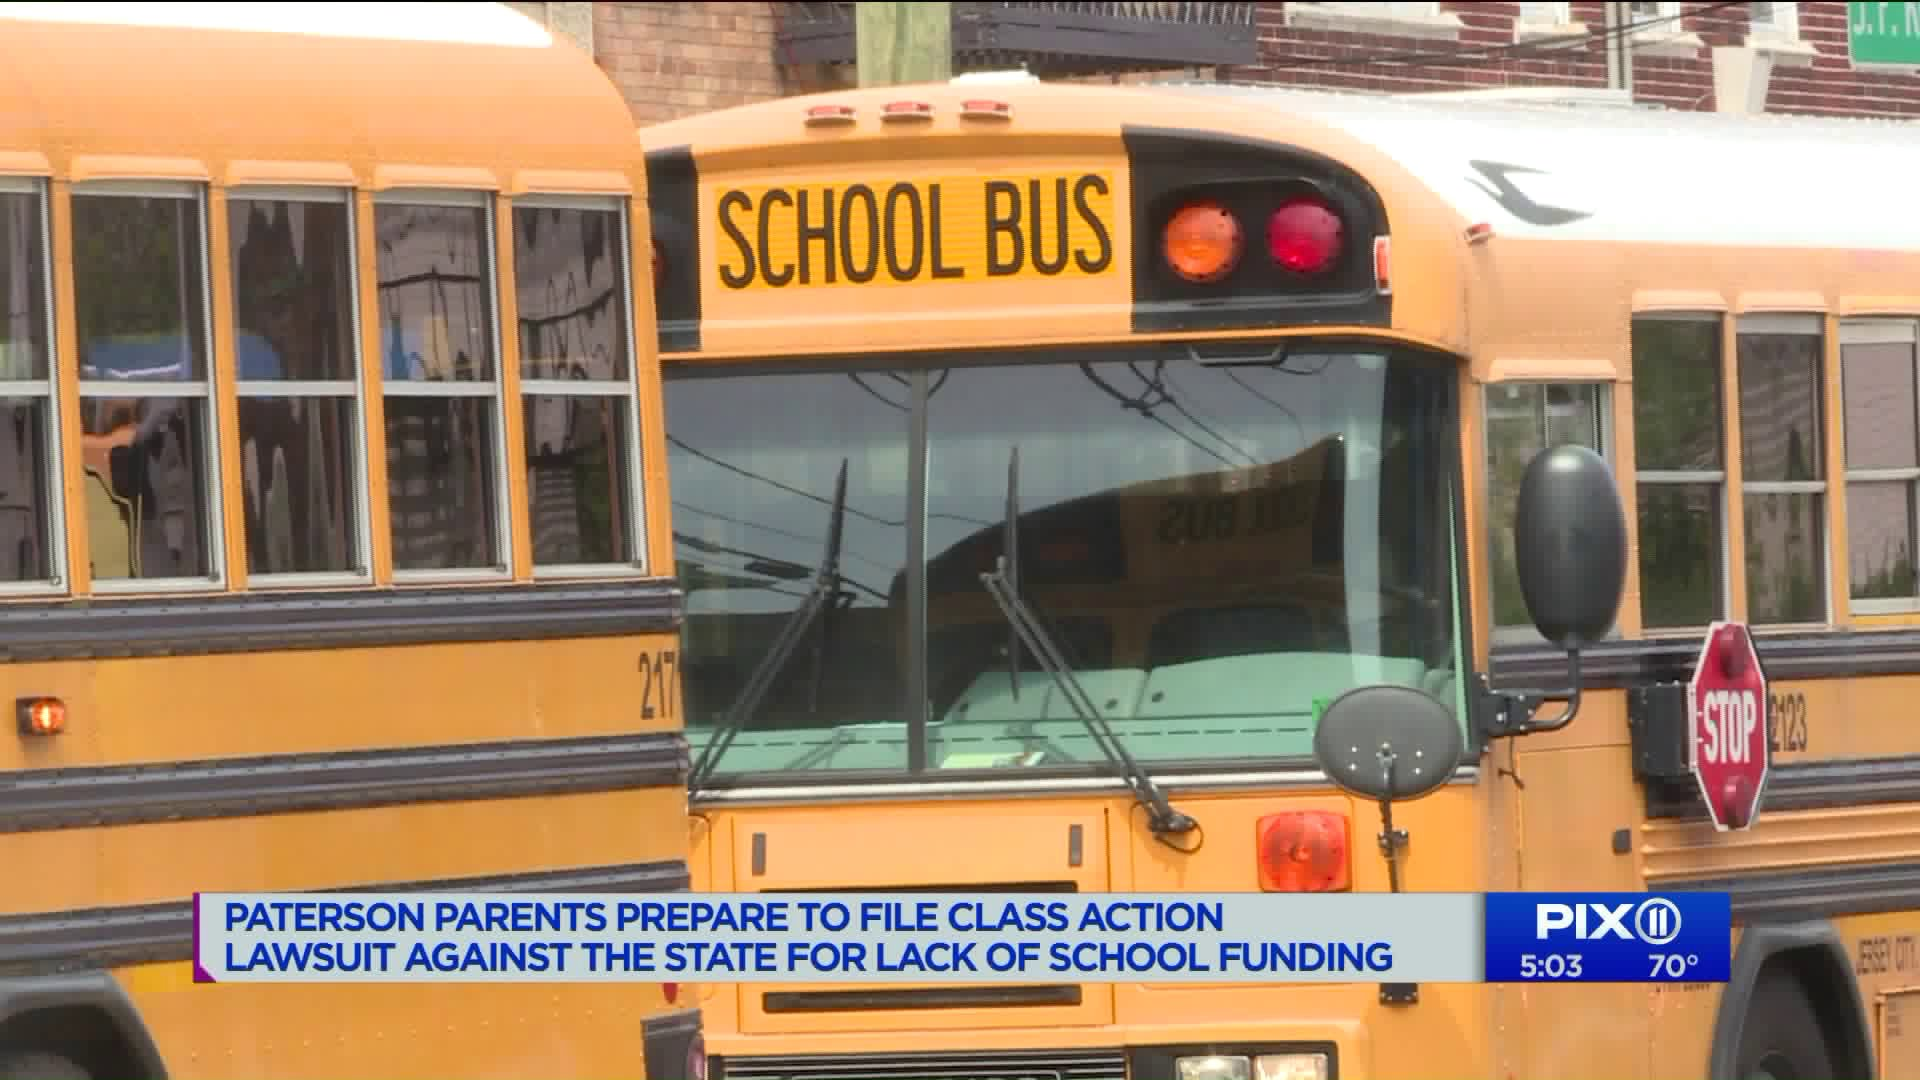 NJ Parents To File Class Action Suit Against State For